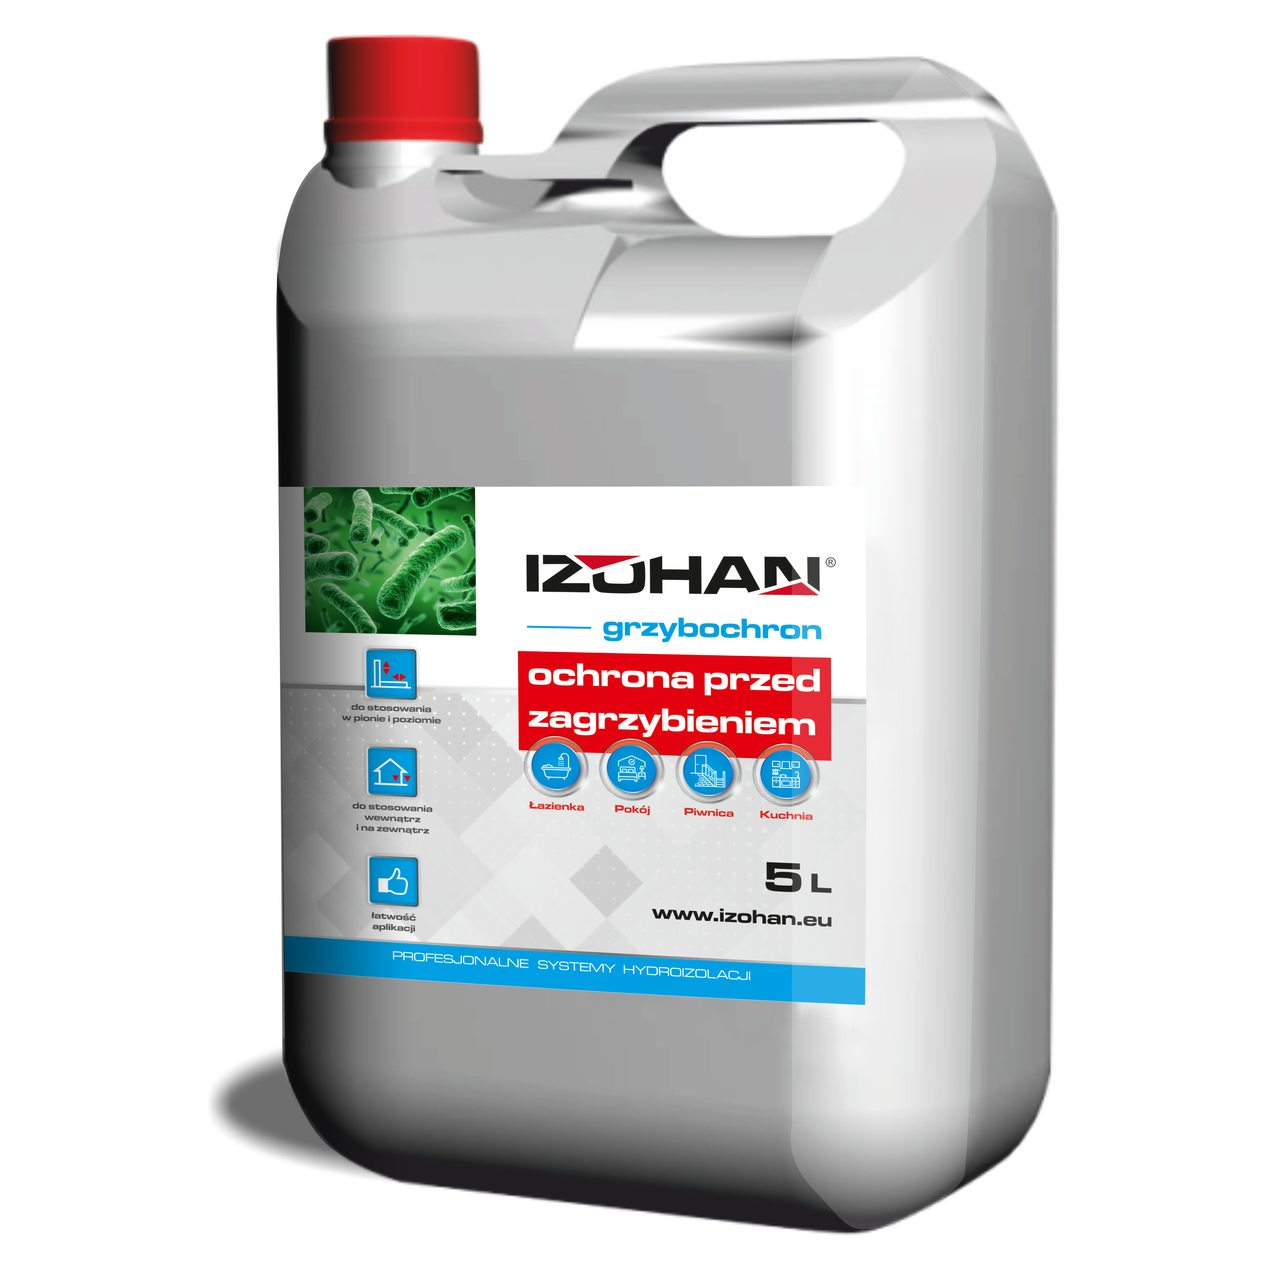 IZOHAN protection against fungi and mould infestation